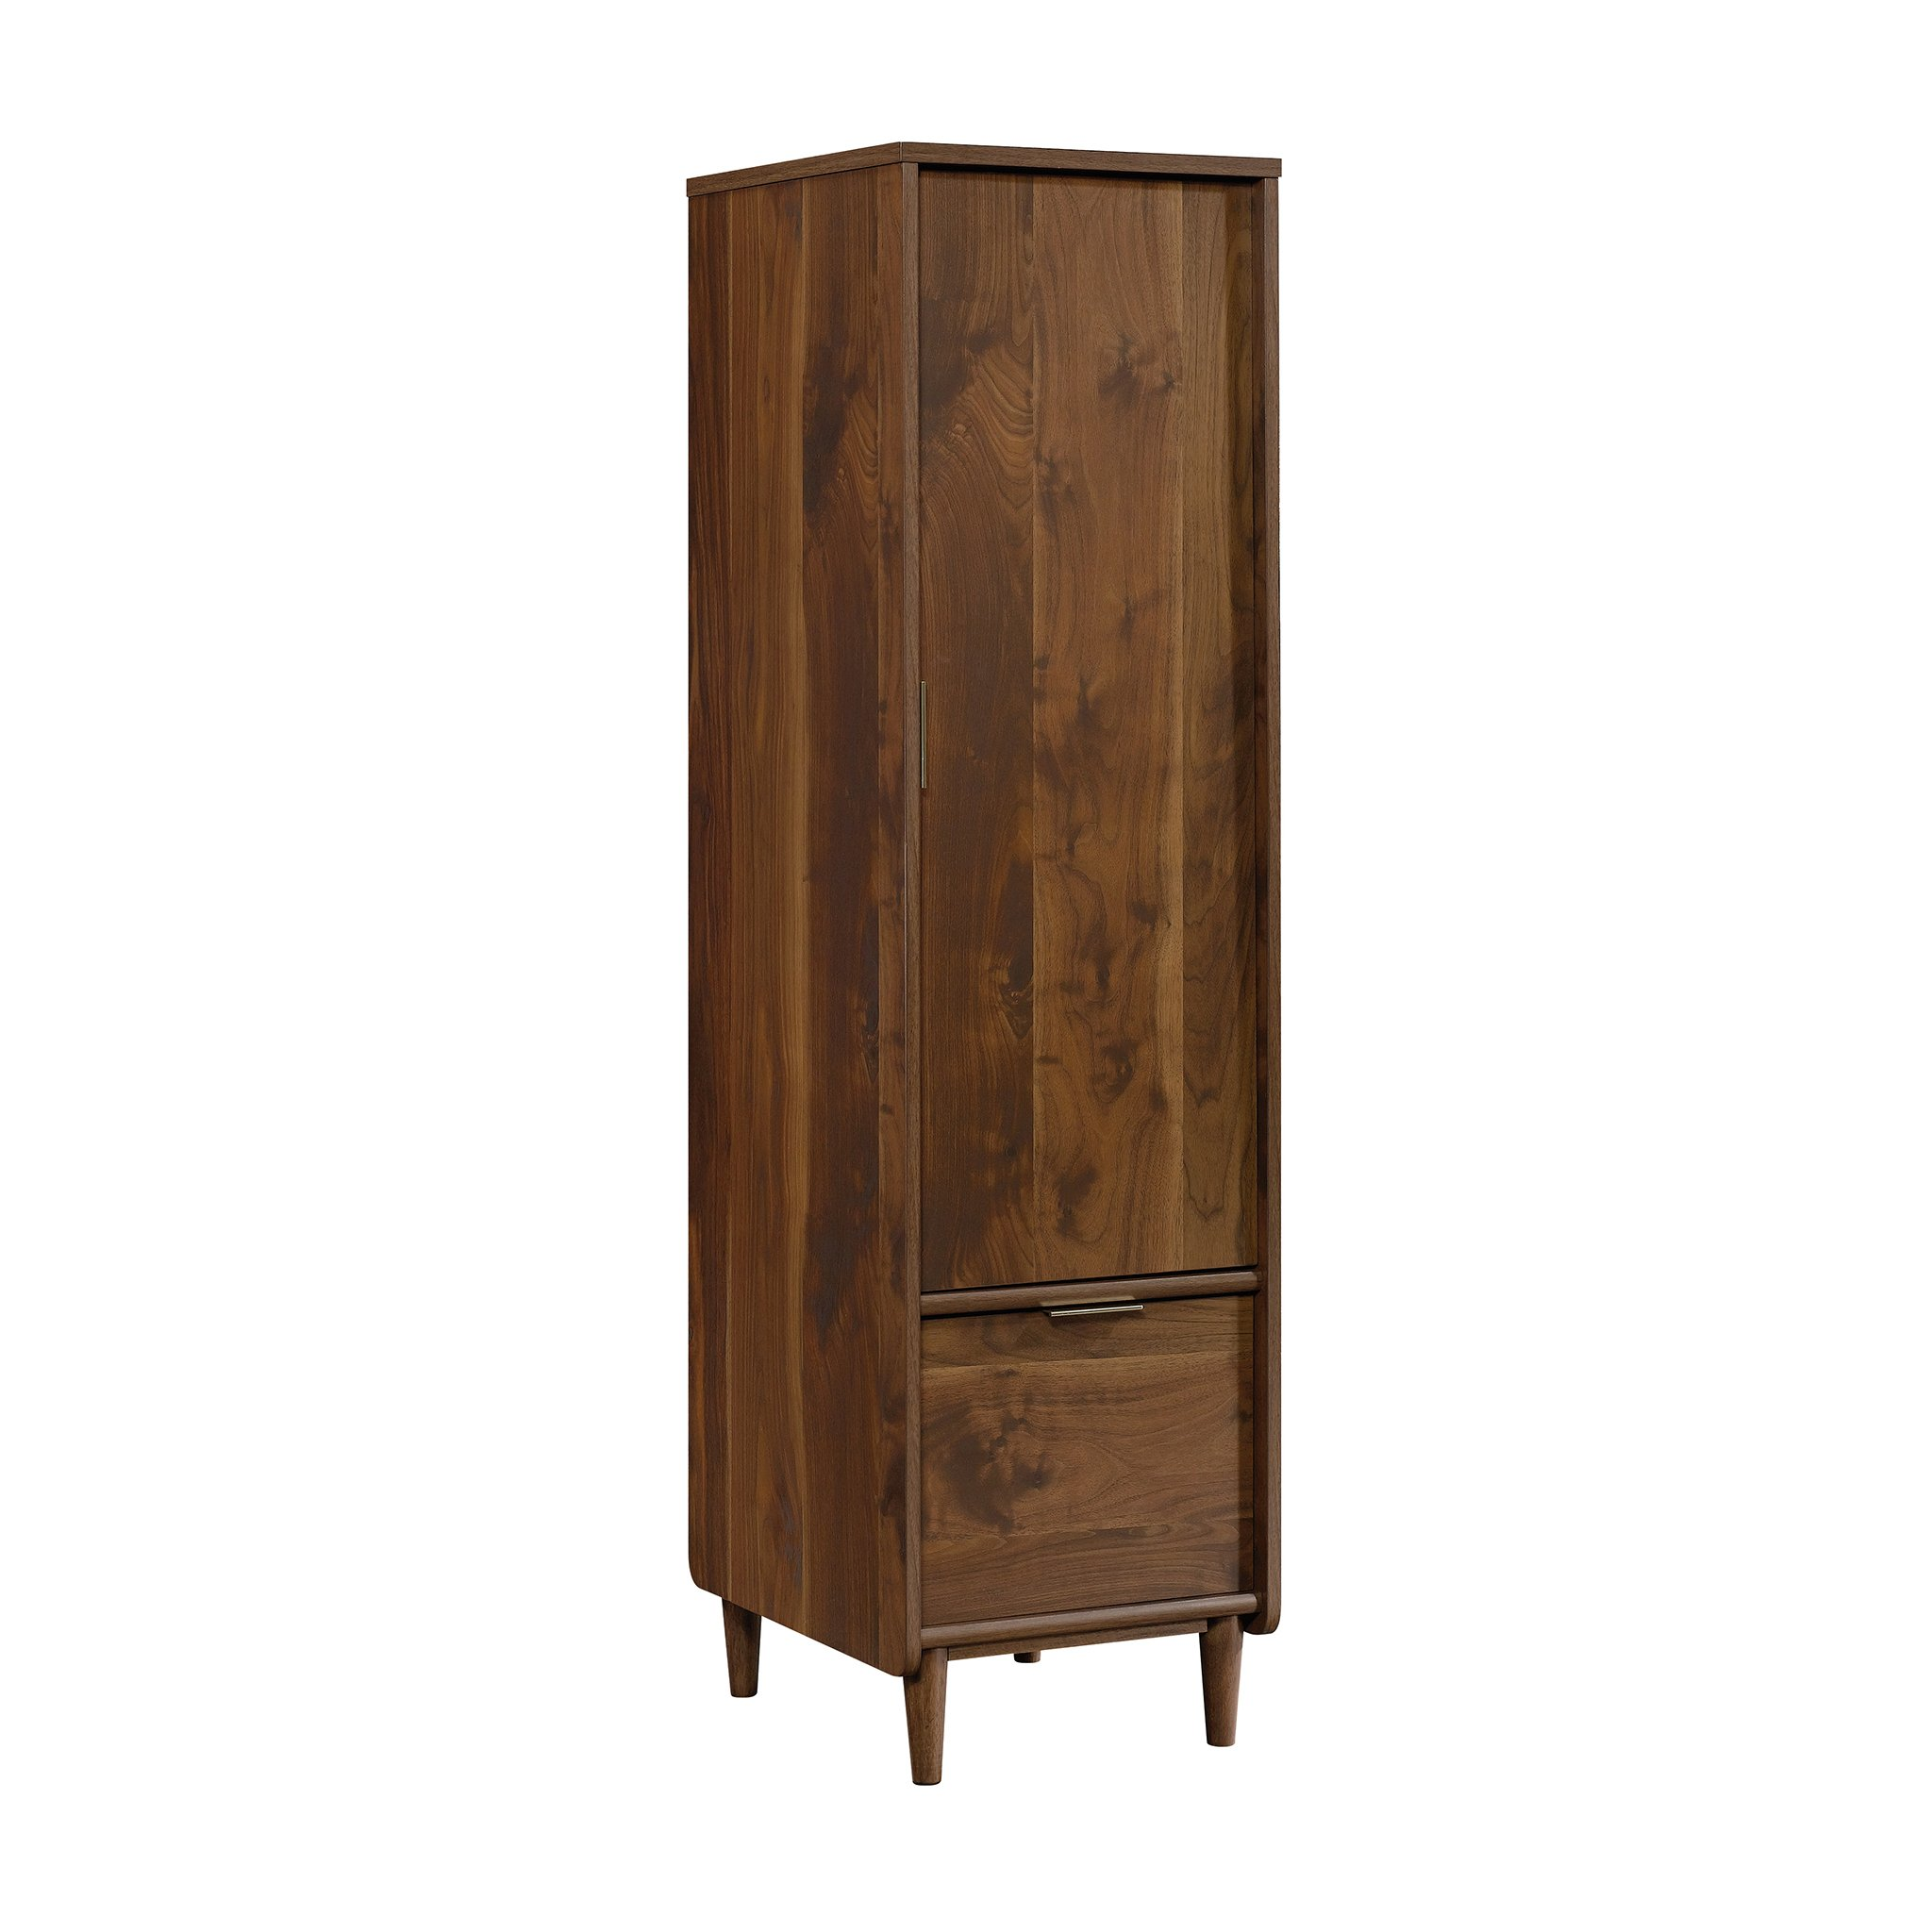 Sauder 421318 Clifford Place Storage Cabinet with File, L: 15.51'' x W: 18.50'' x H: 58.27'', Grand Walnut Finish by Sauder (Image #1)